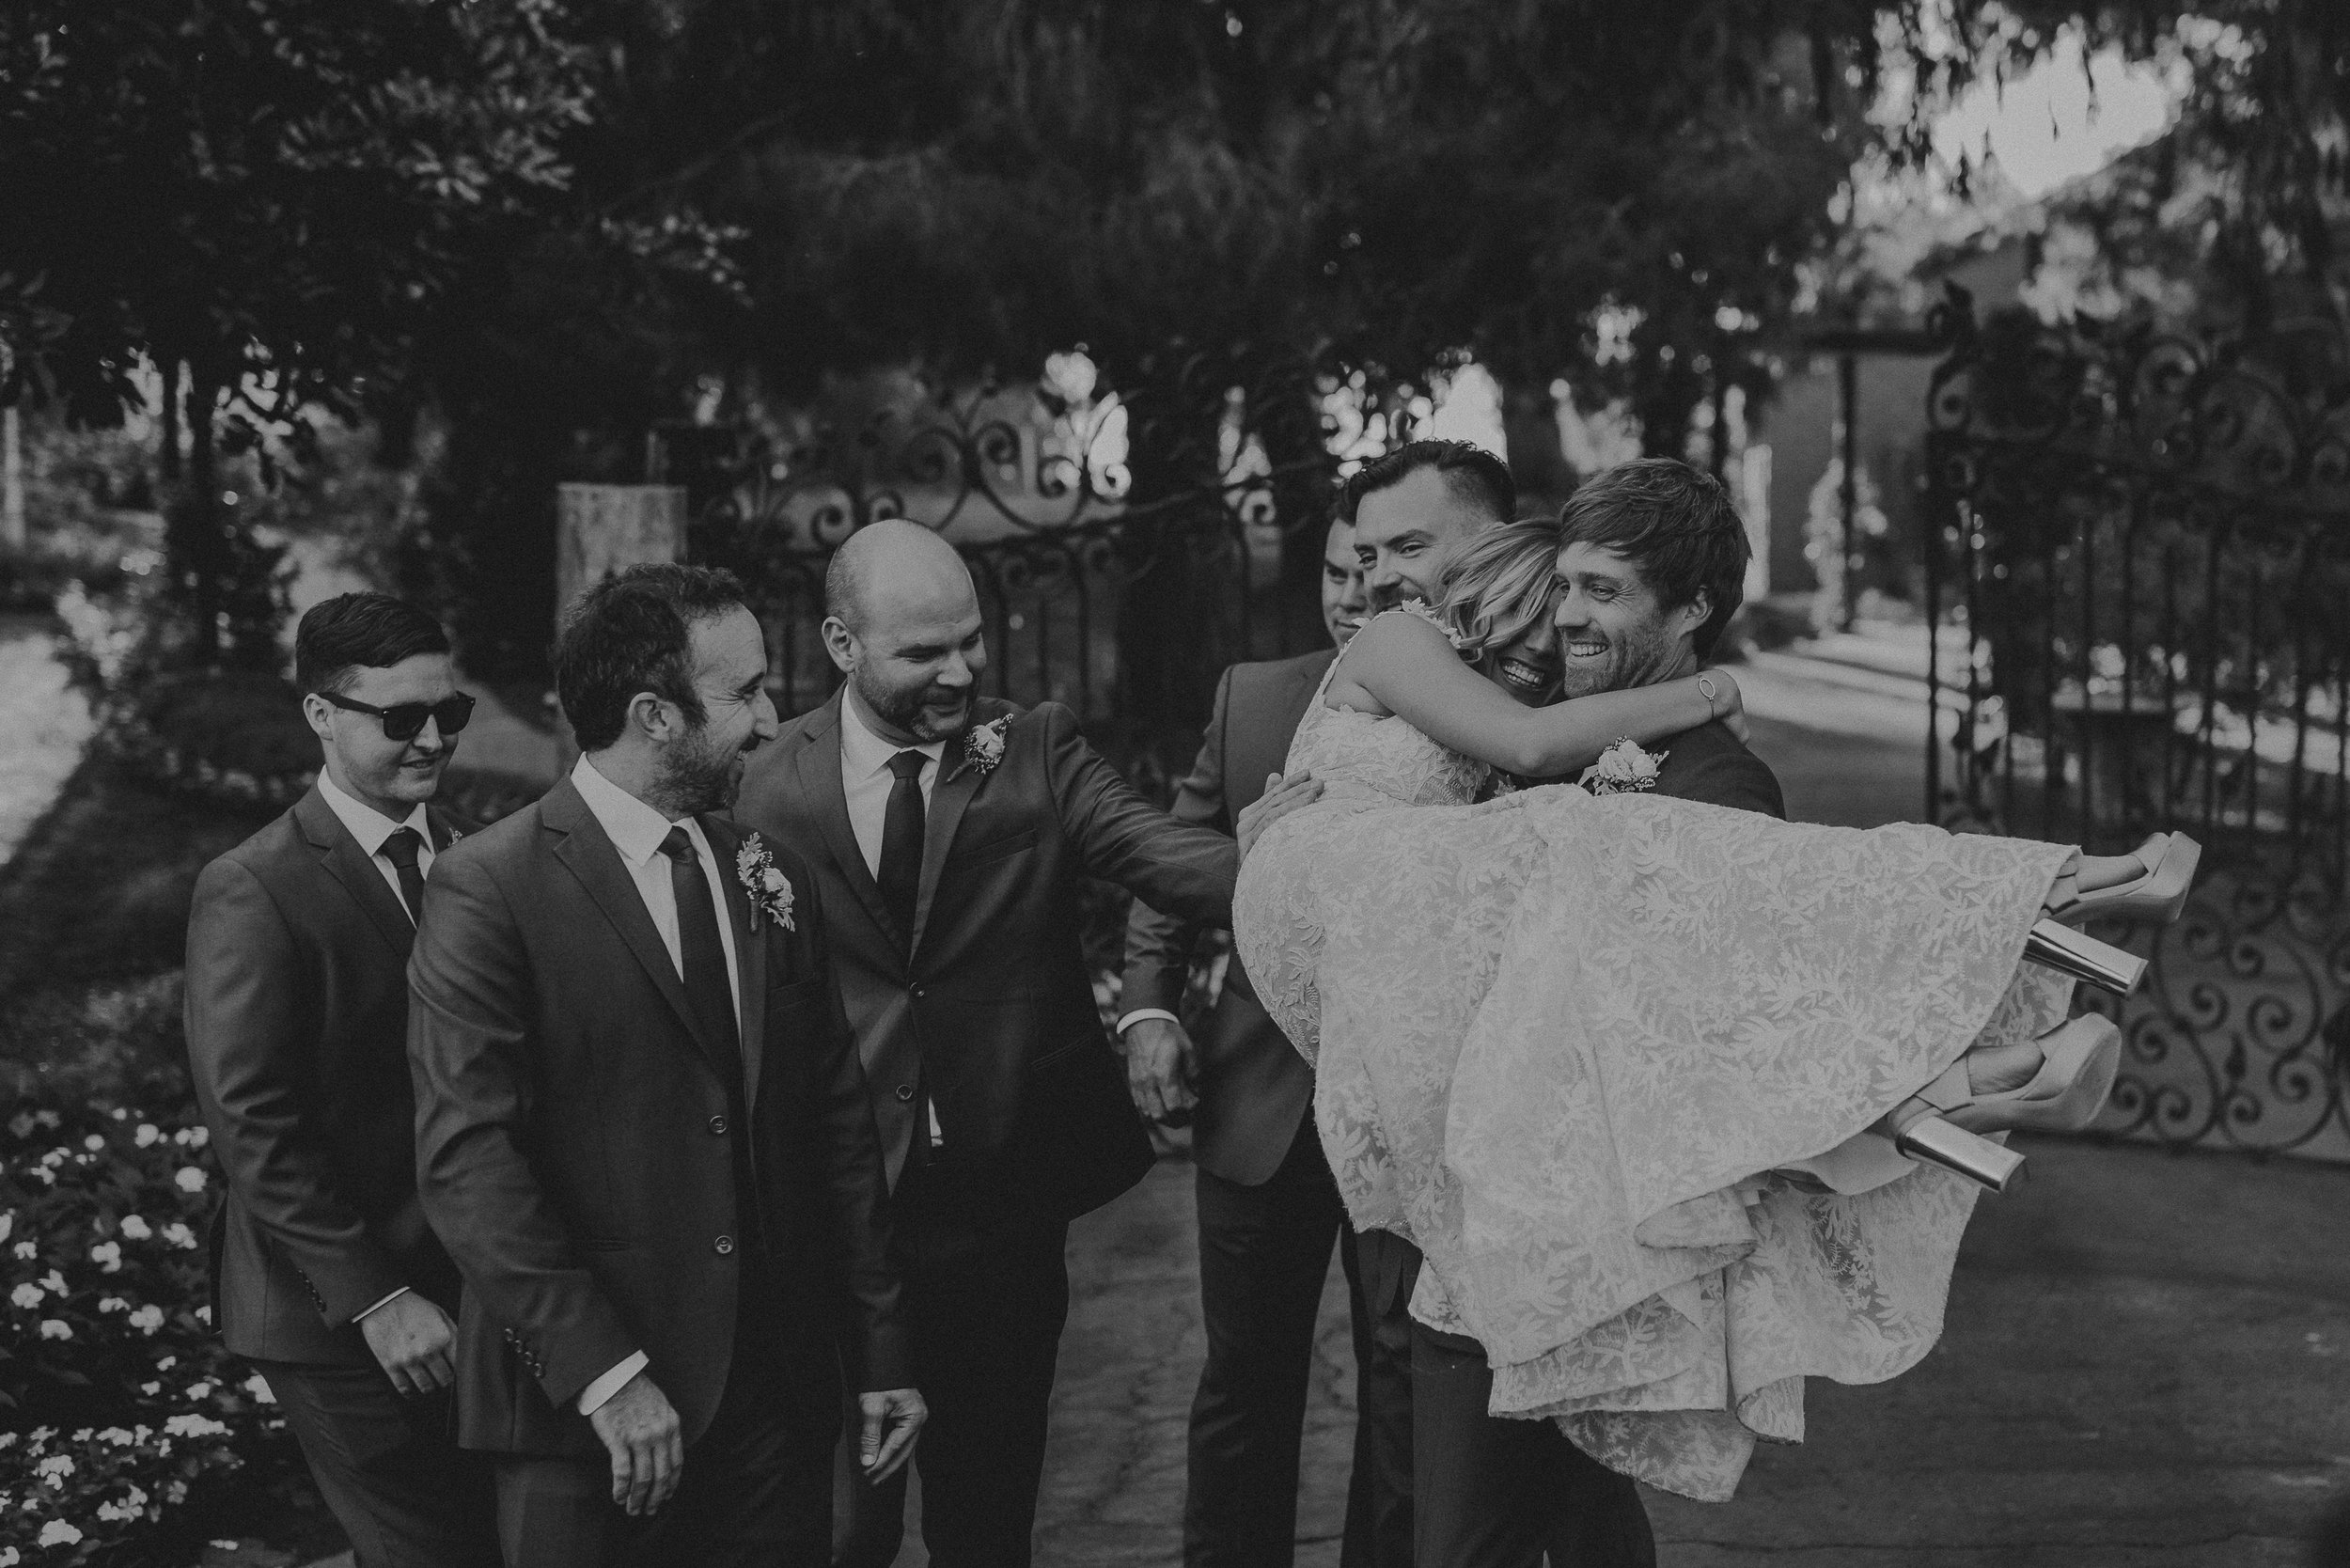 Isaiah + Taylor Photography - Los Angeles Wedding Photographer - Open Air Resort Wedding-73.jpg